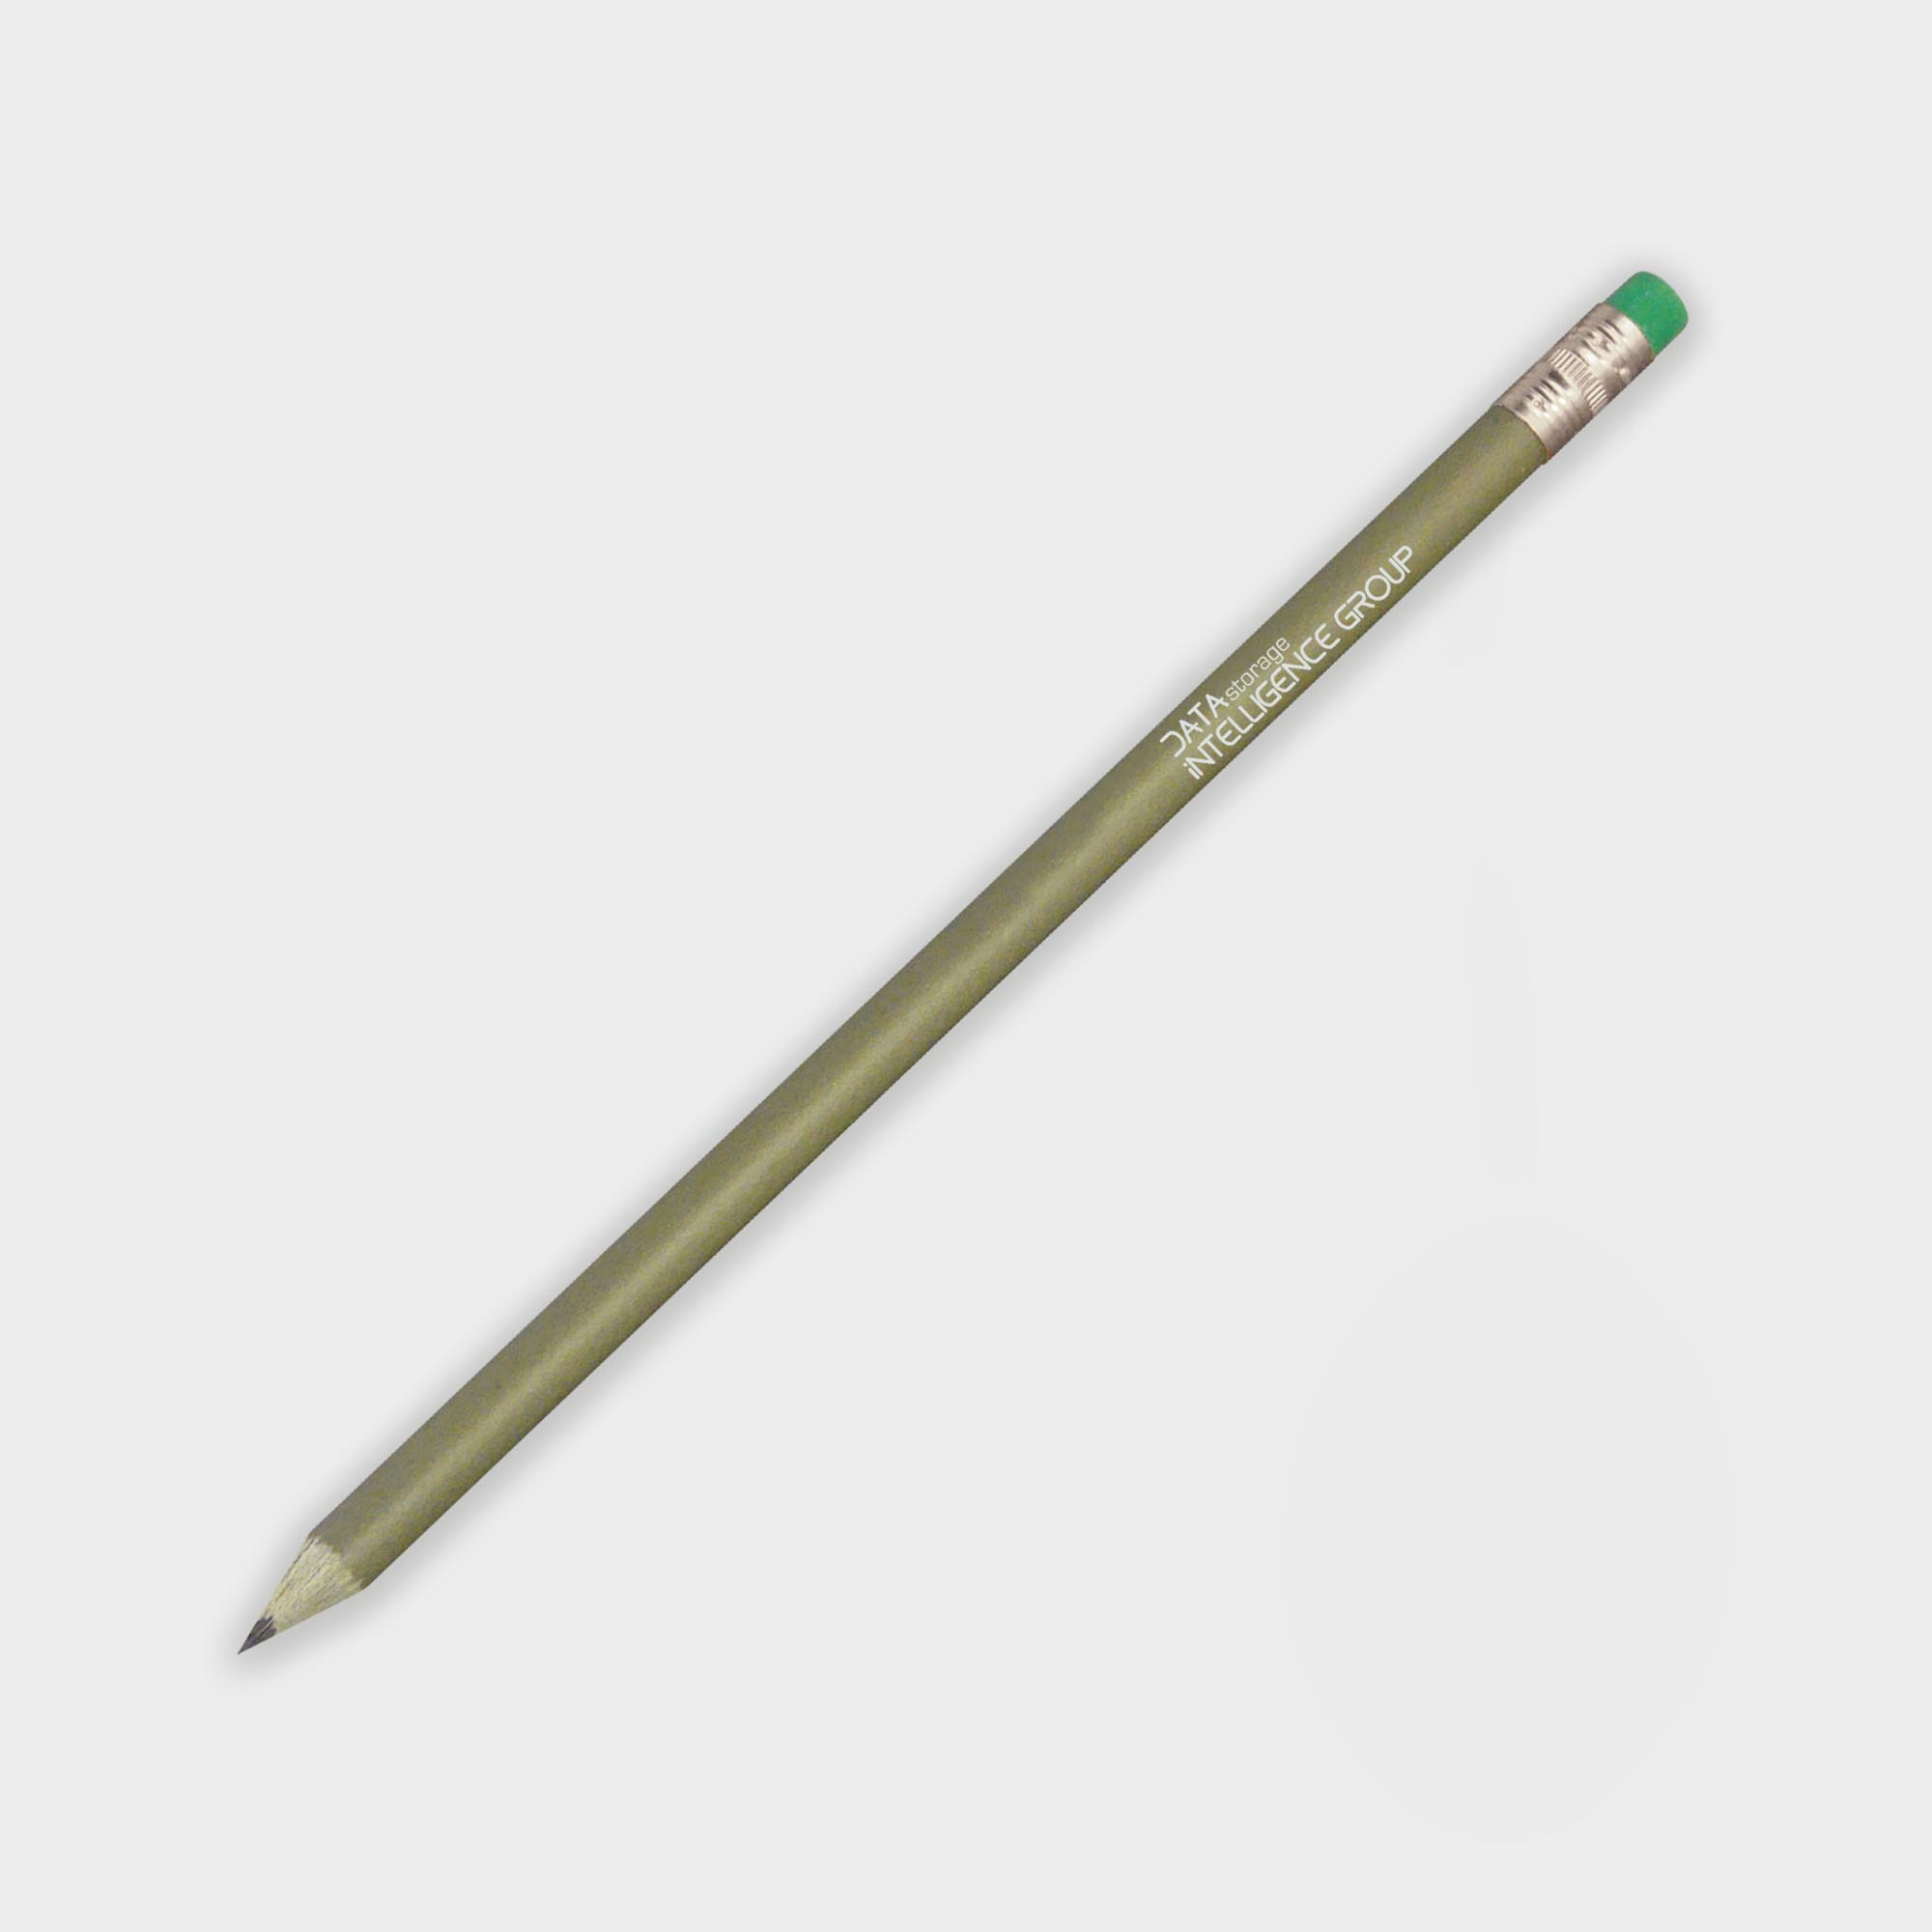 Promotional Recycled Money Pencil